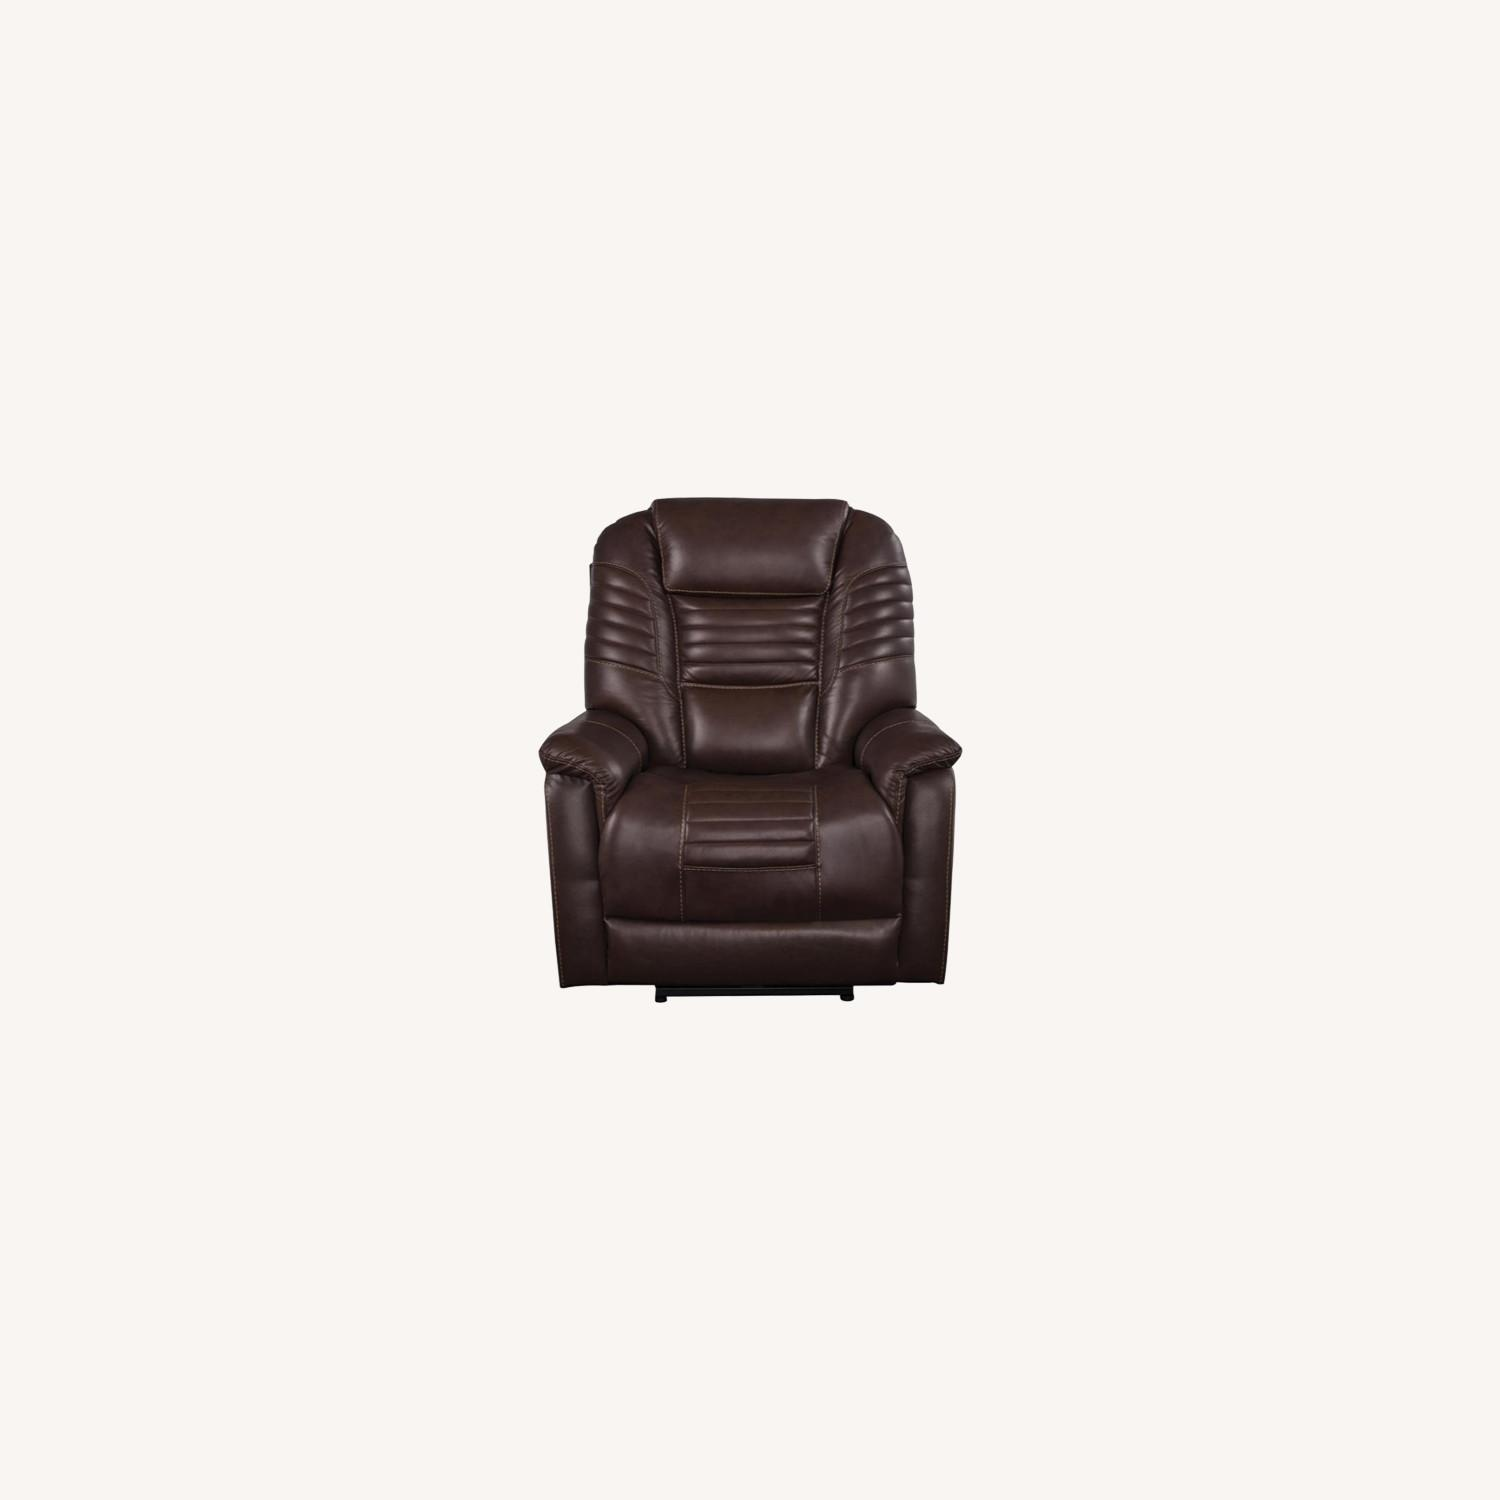 Power Recliner In Cozy Brown Leather Upholstery - image-9